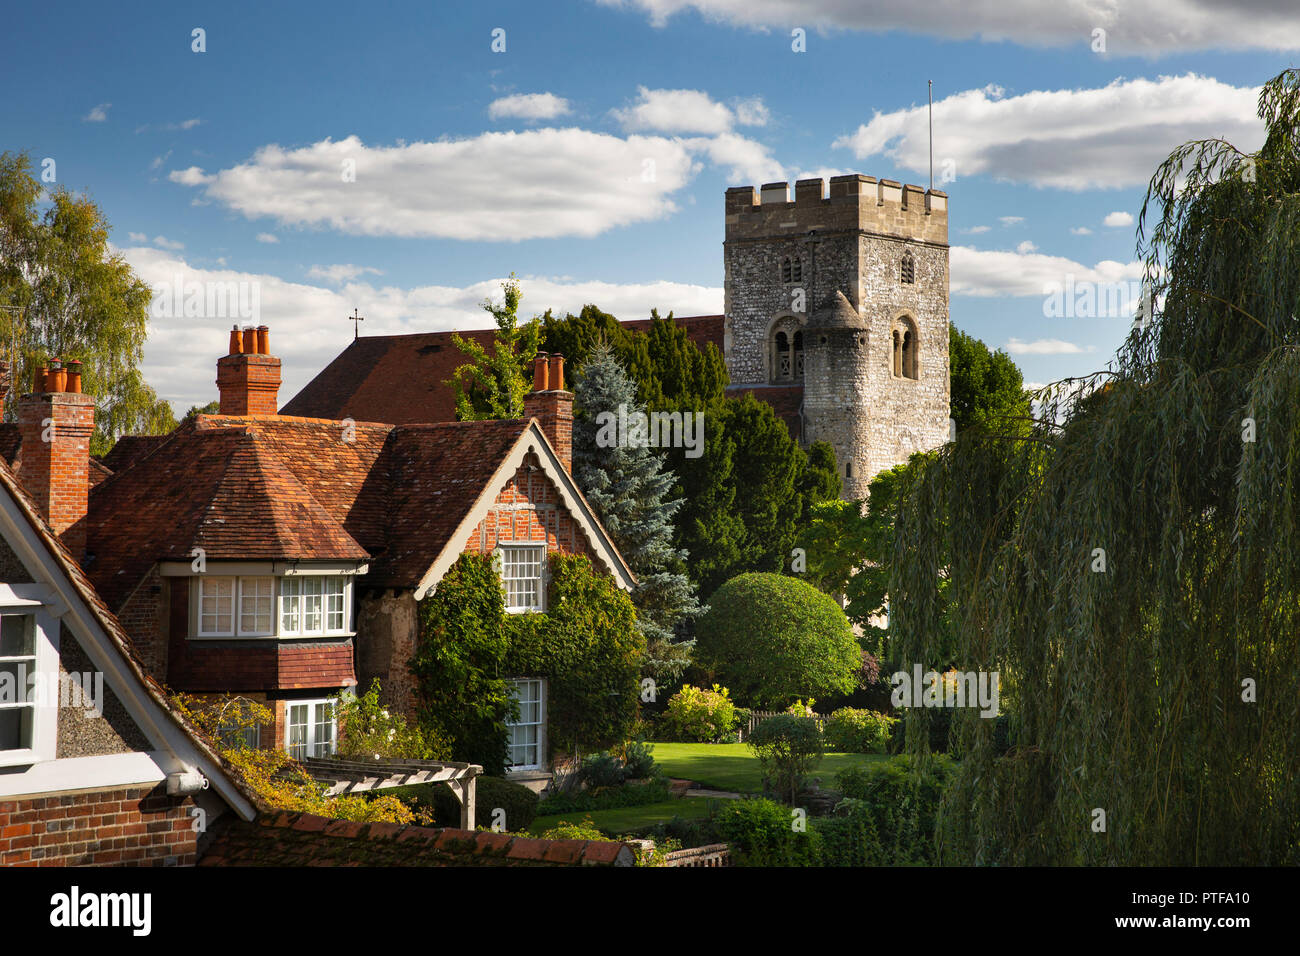 England Berkshire Goring On Thames Mill Cottage George Michael S Home Next To Church Stock Photo Alamy,Small Space Small Built In Cabinets Bedroom